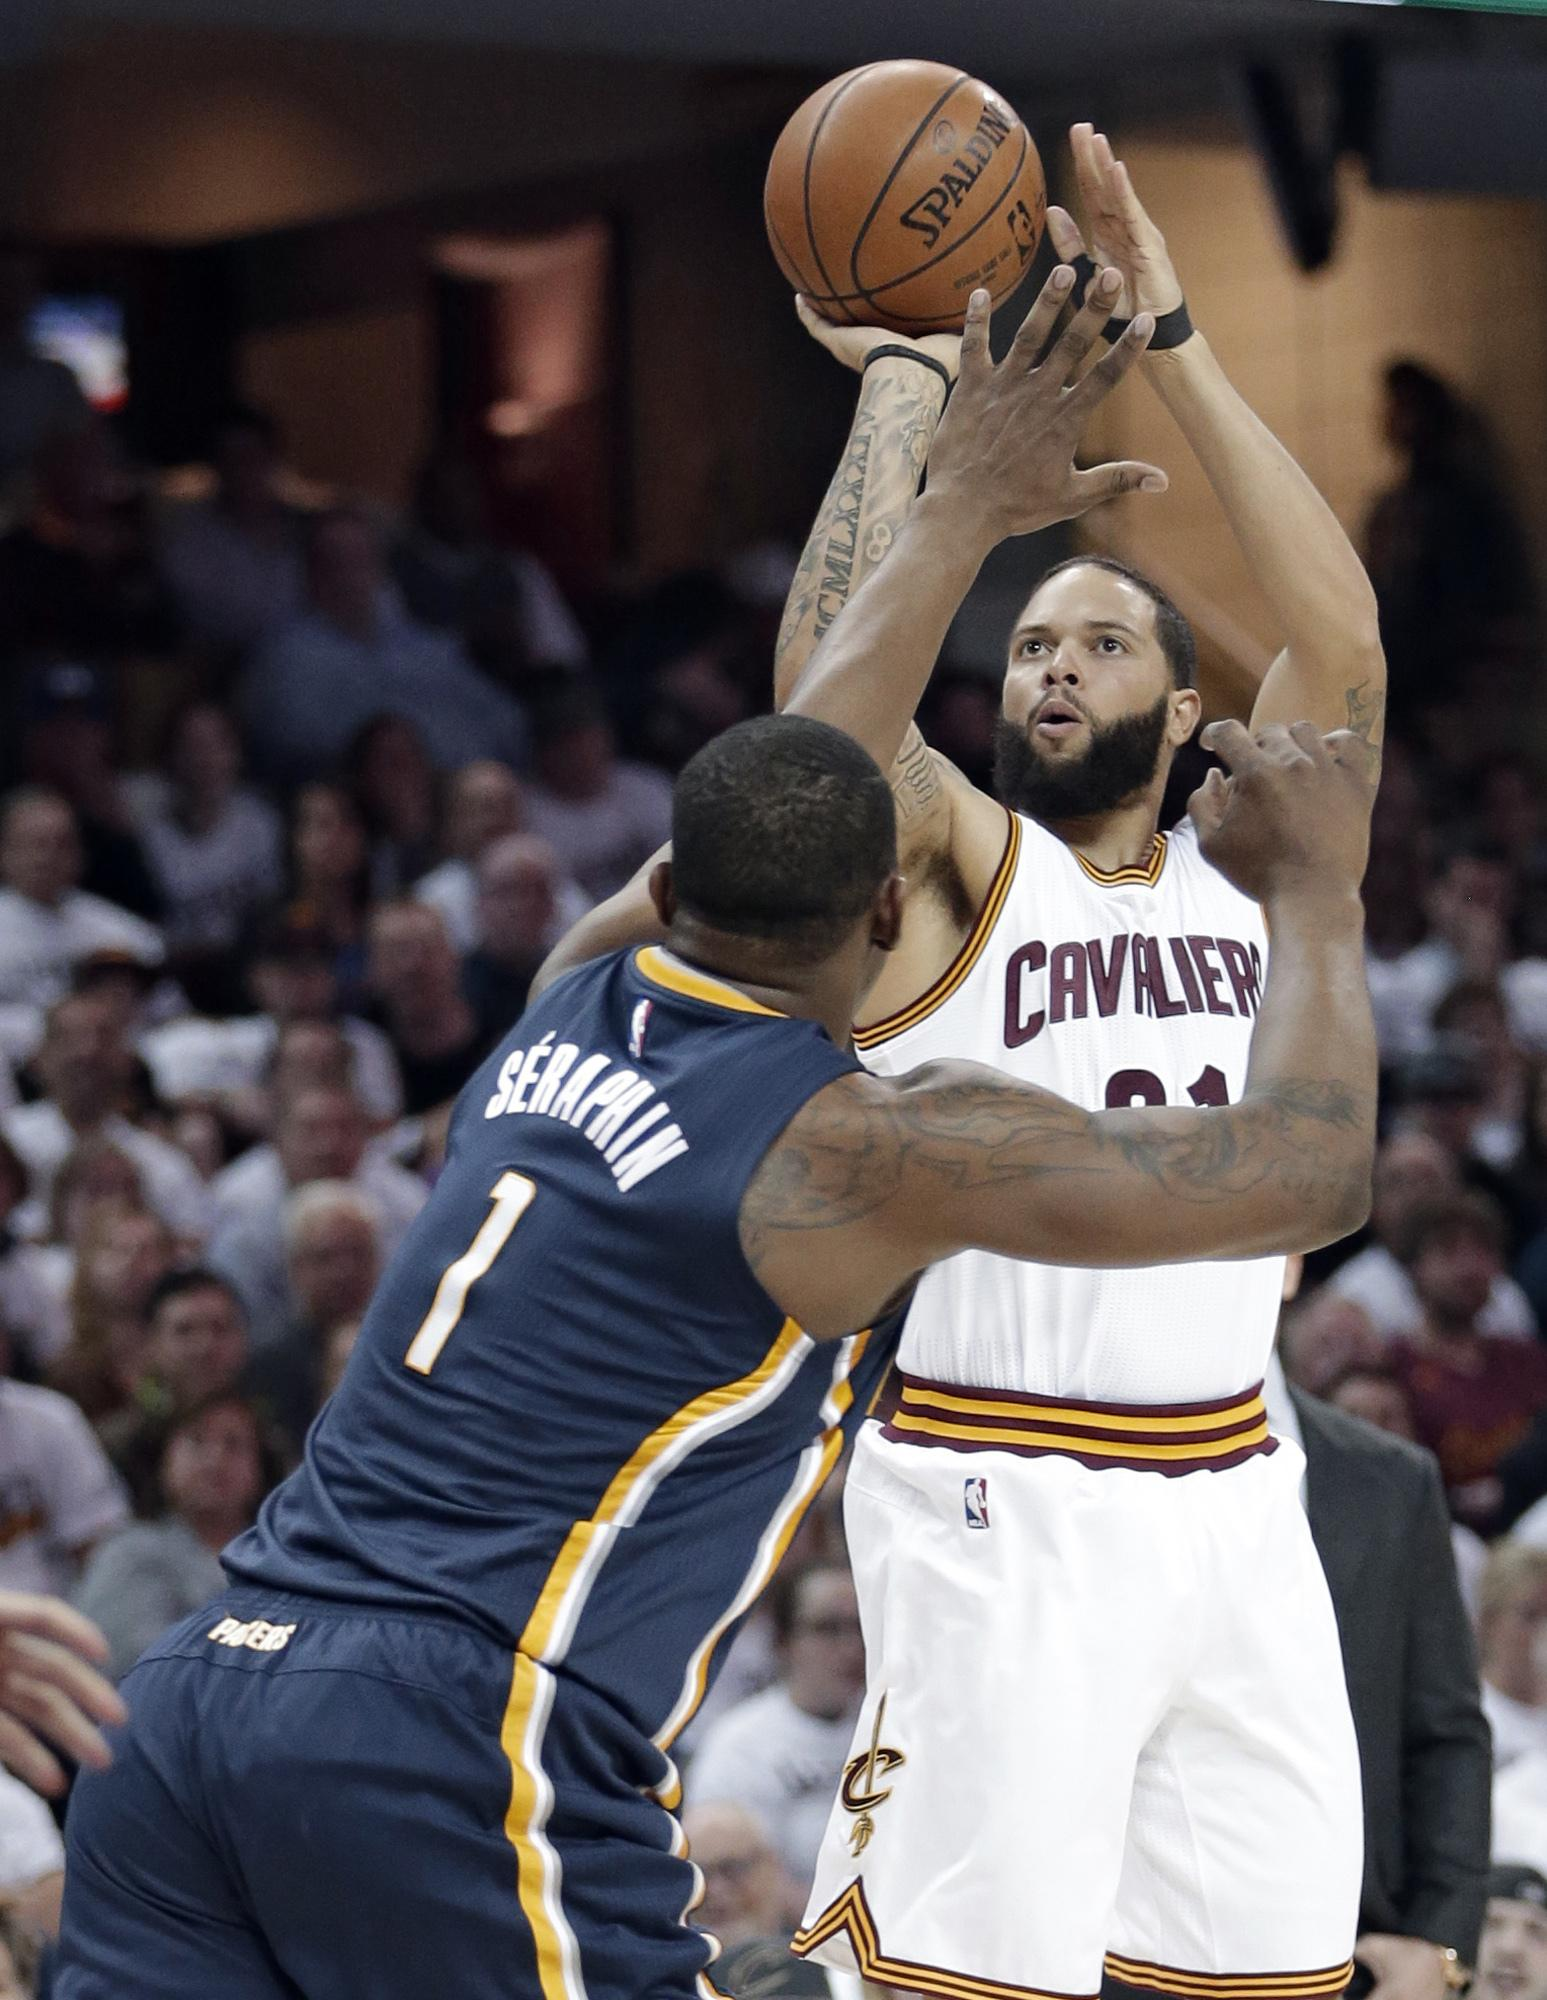 Cavaliers_williams_busts_out_basketball_89383